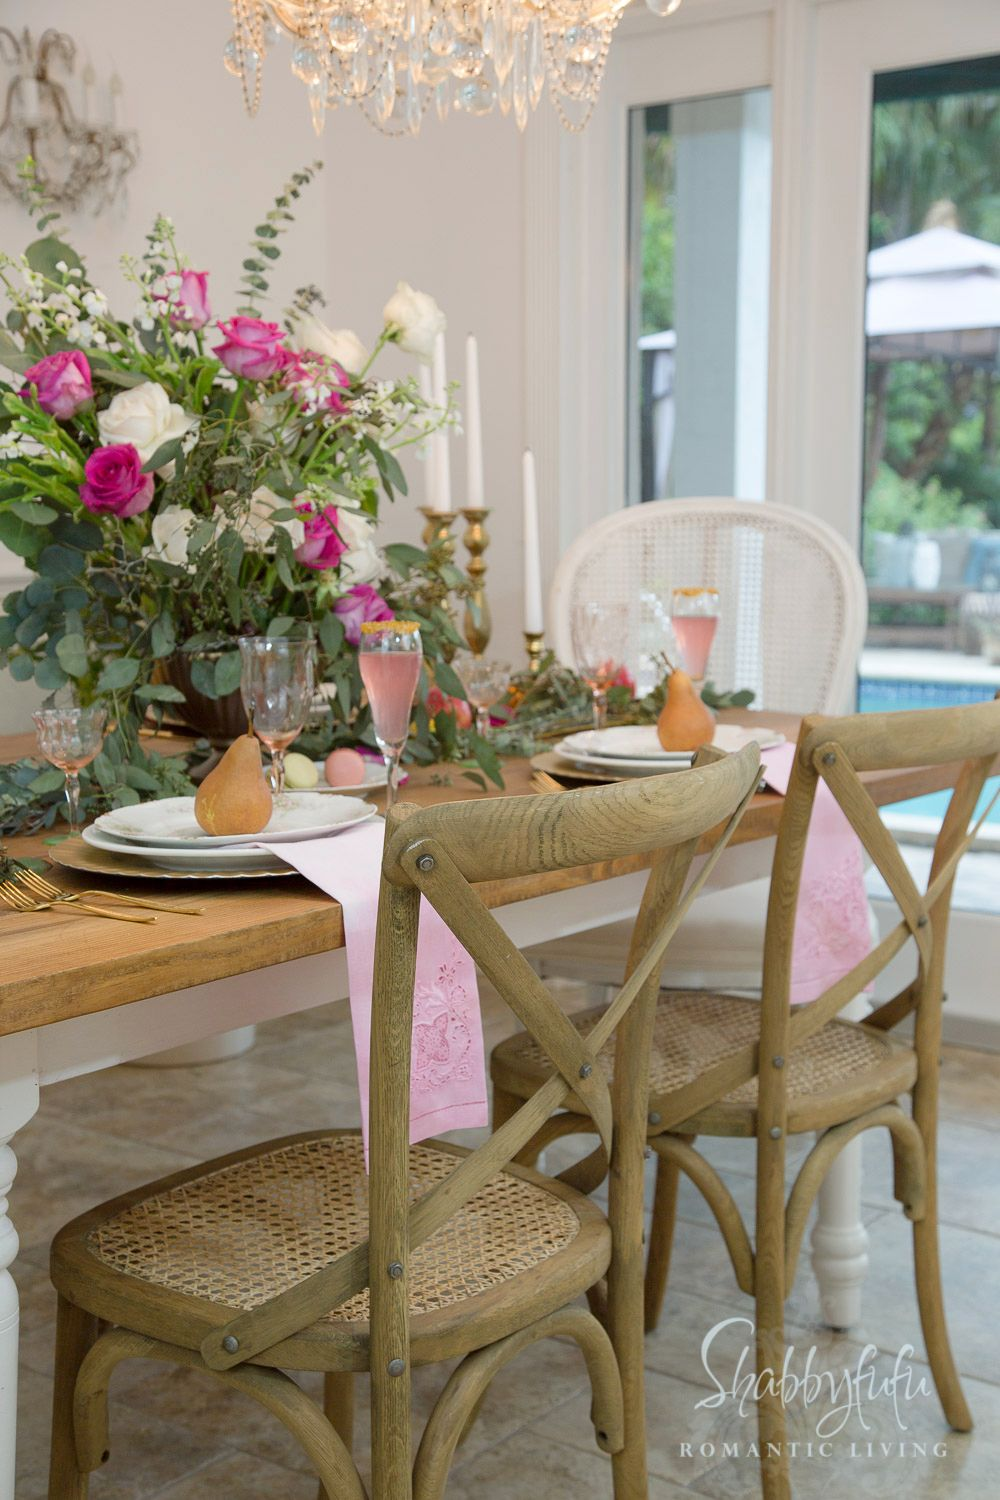 Elegant Table Centerpiece French Country Decorating From Shabbyfufu